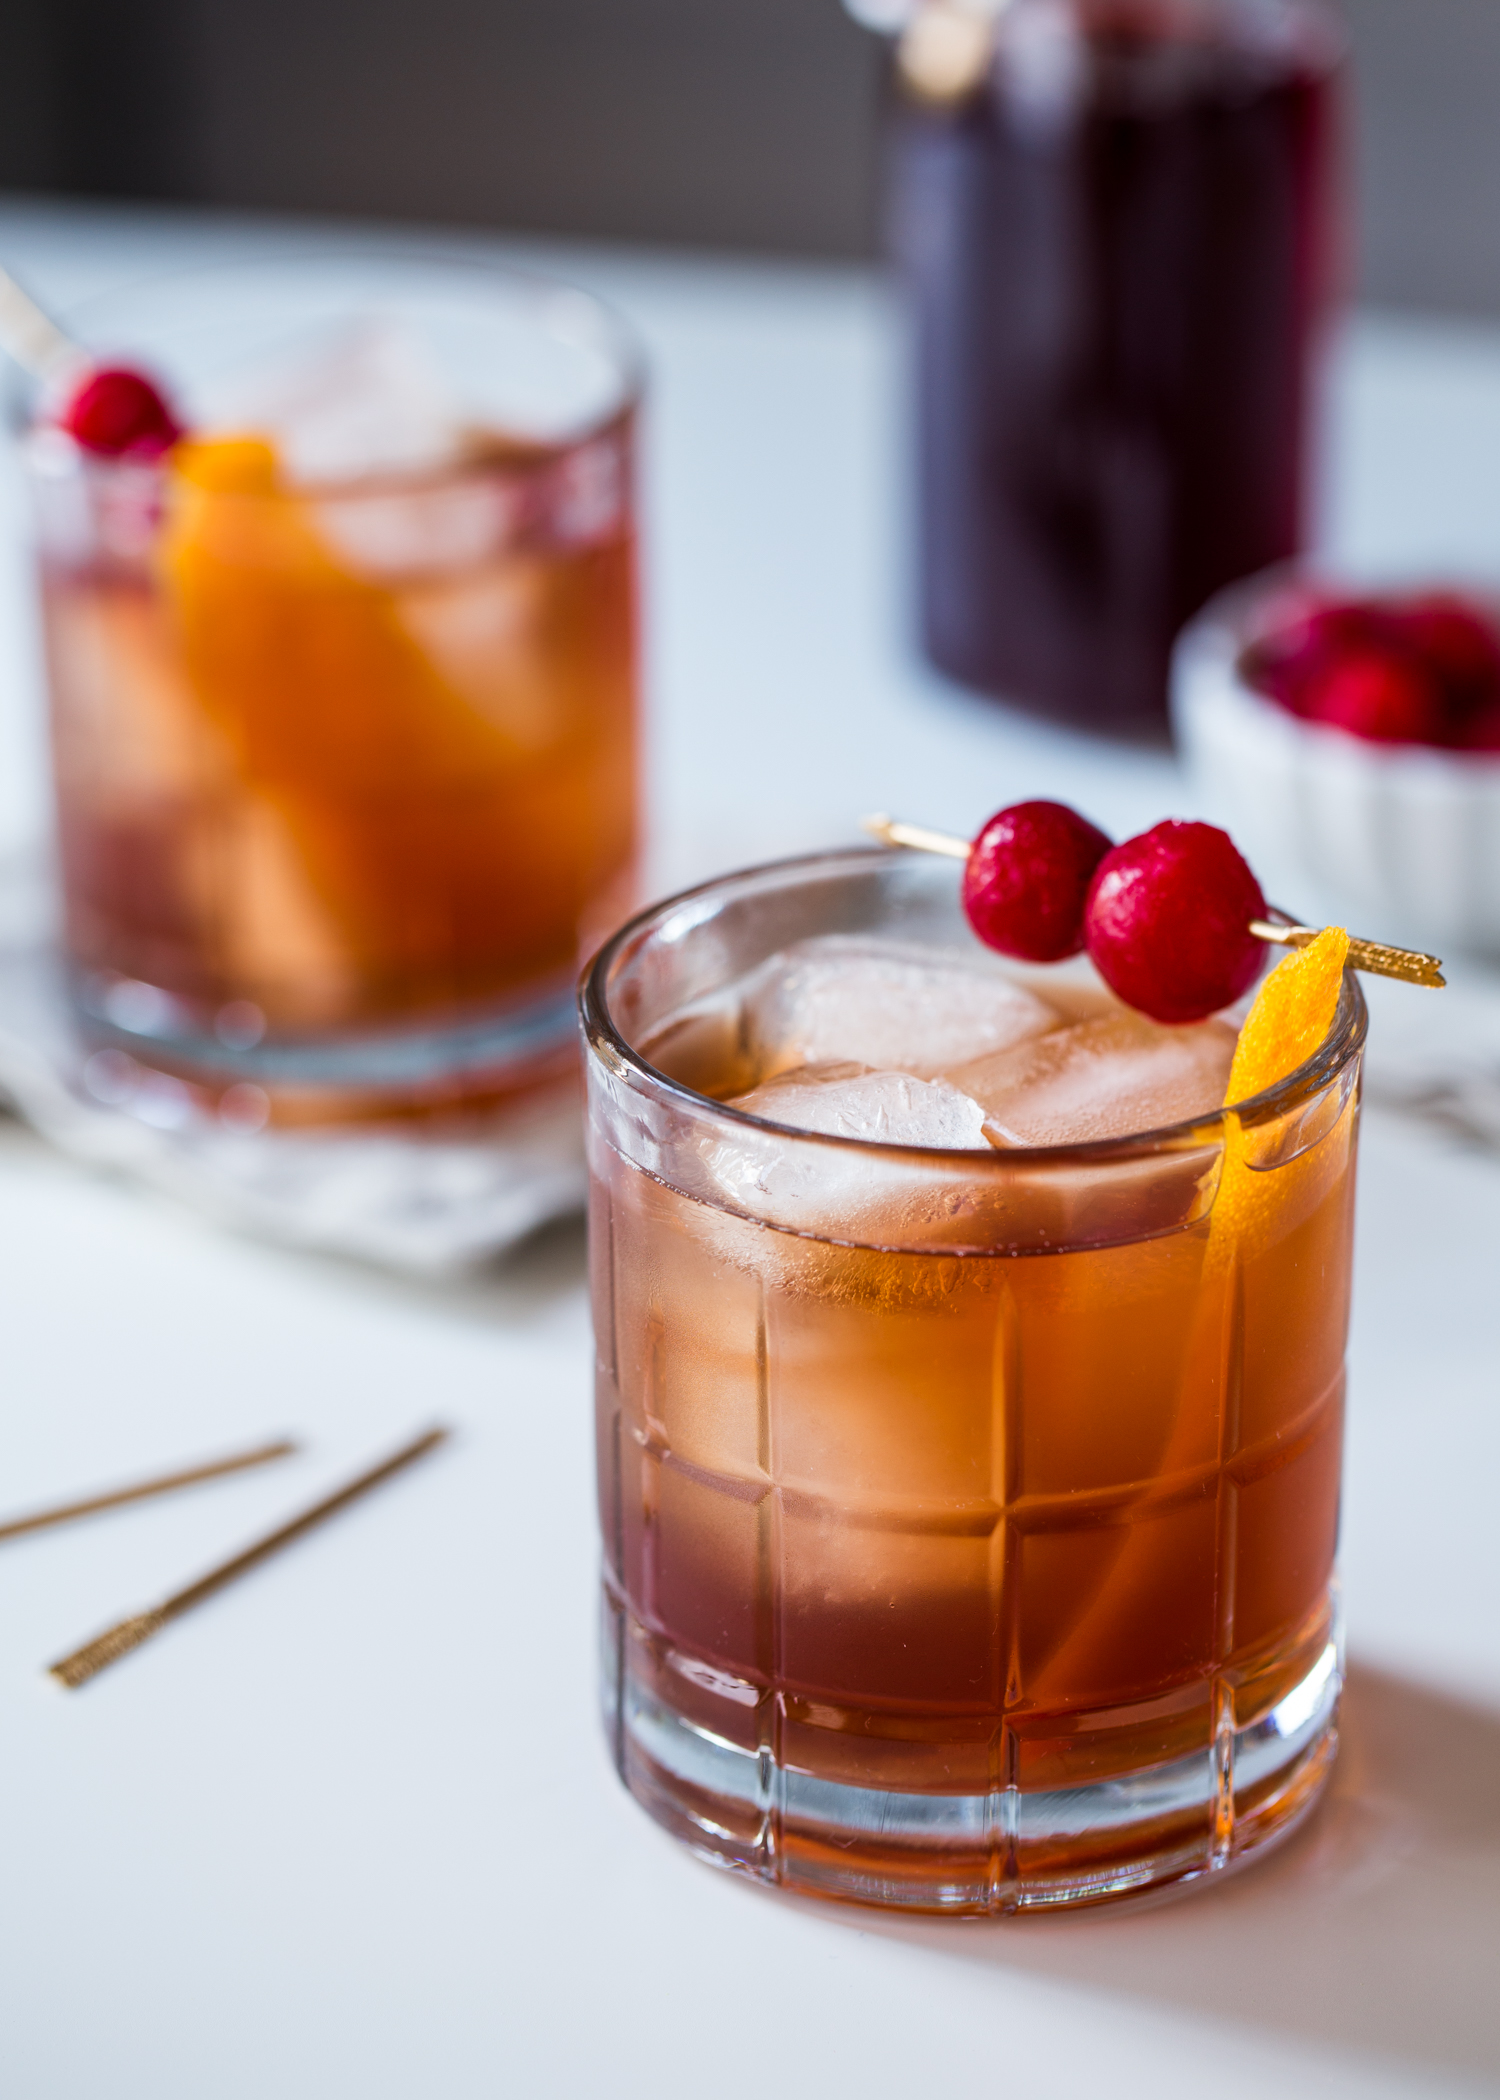 Tart Cherry Old Fashioned   Jelly Toast Tart Cherry Old Fashioned cocktails are perfect for Valentine s Day